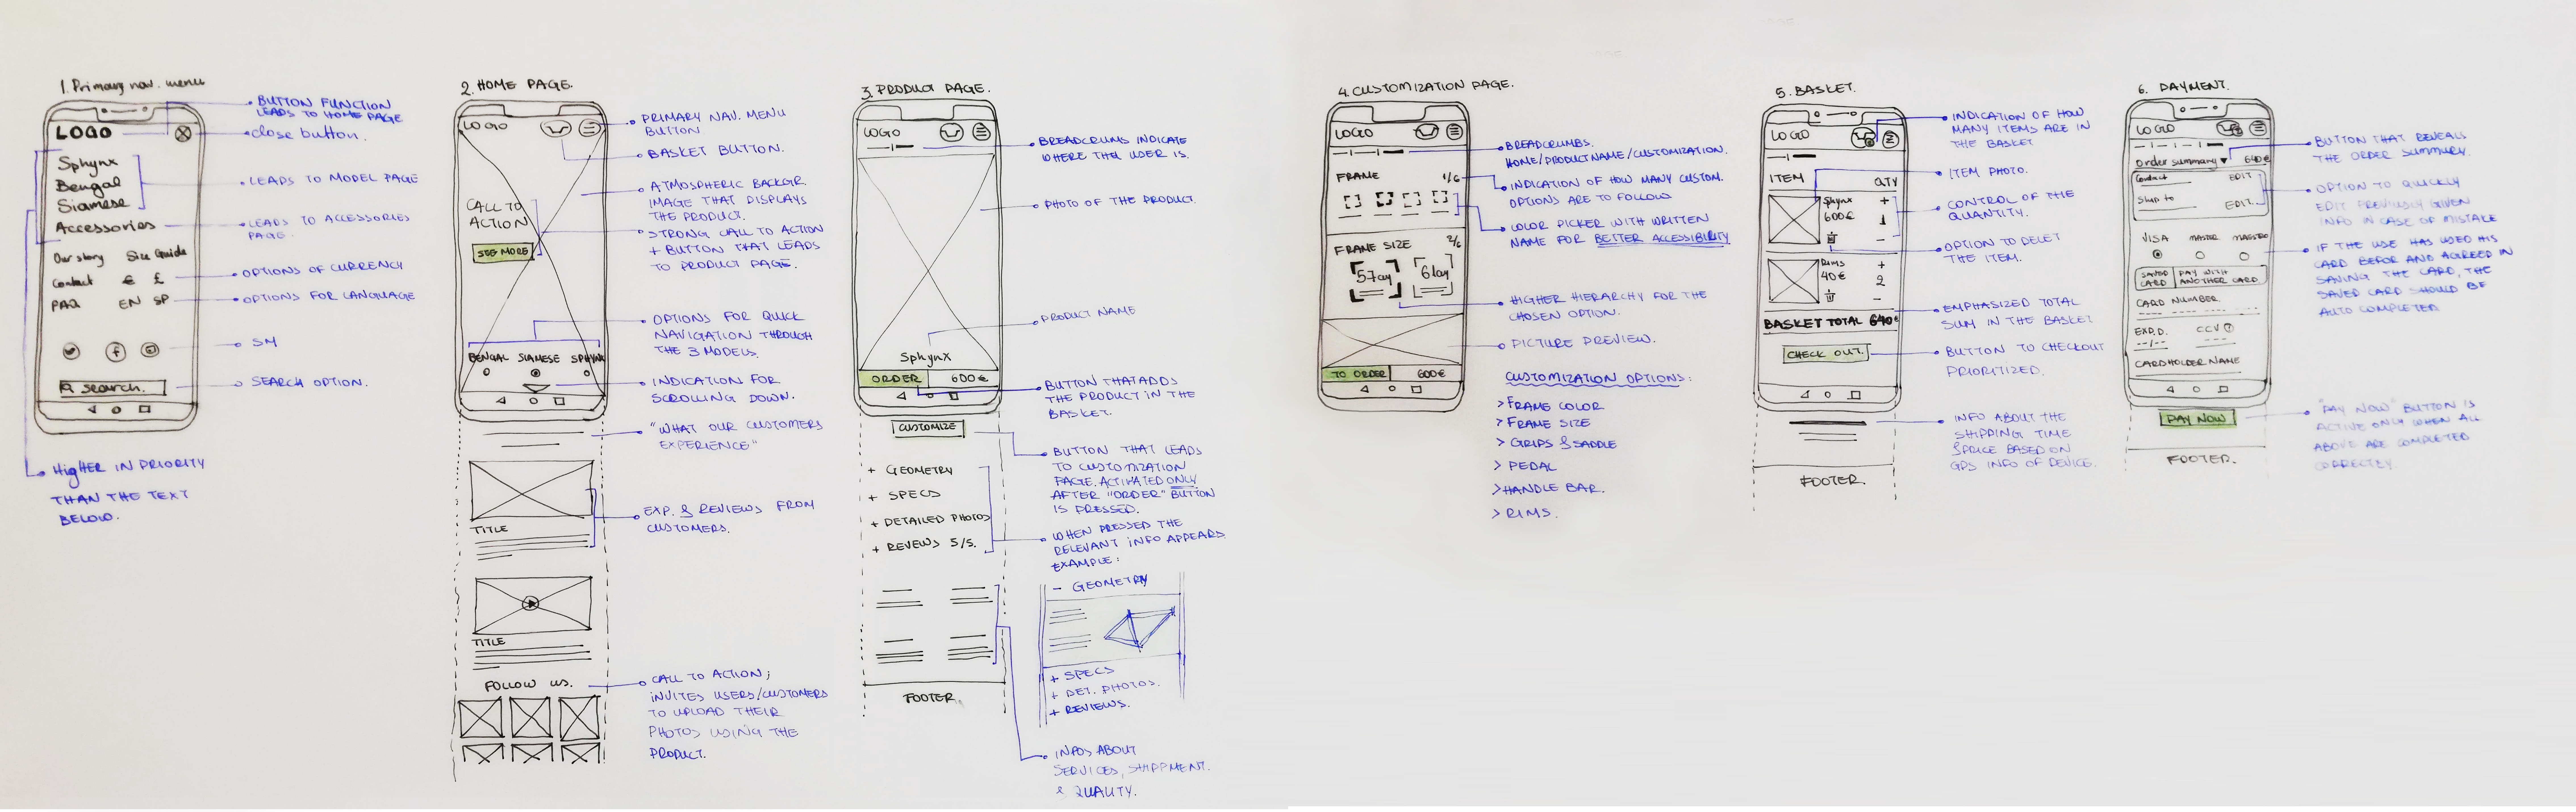 Wireframe sketches.